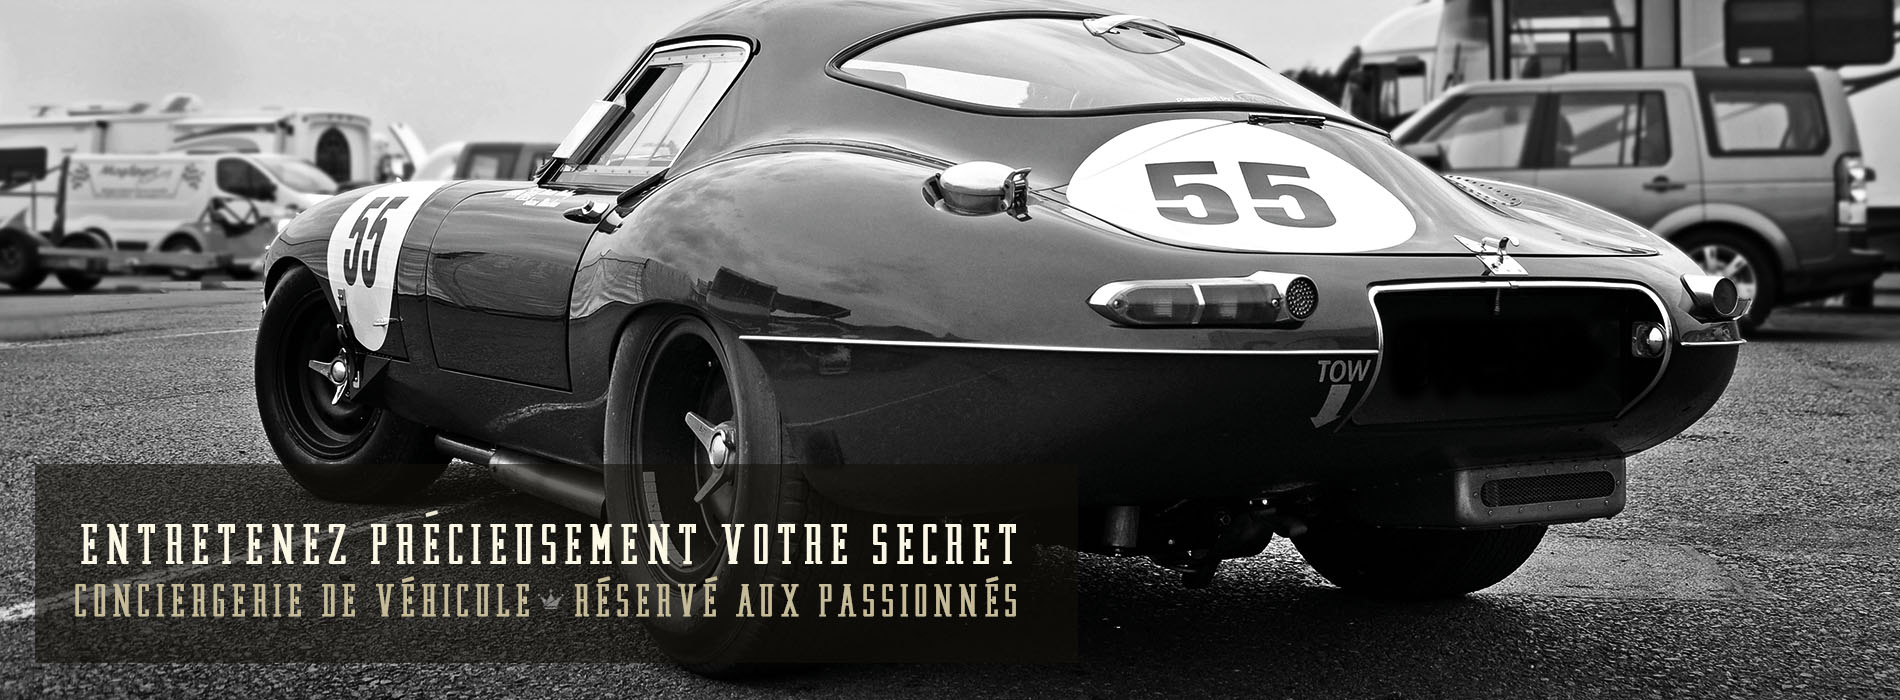 Secret arthur gardiennage de voiture